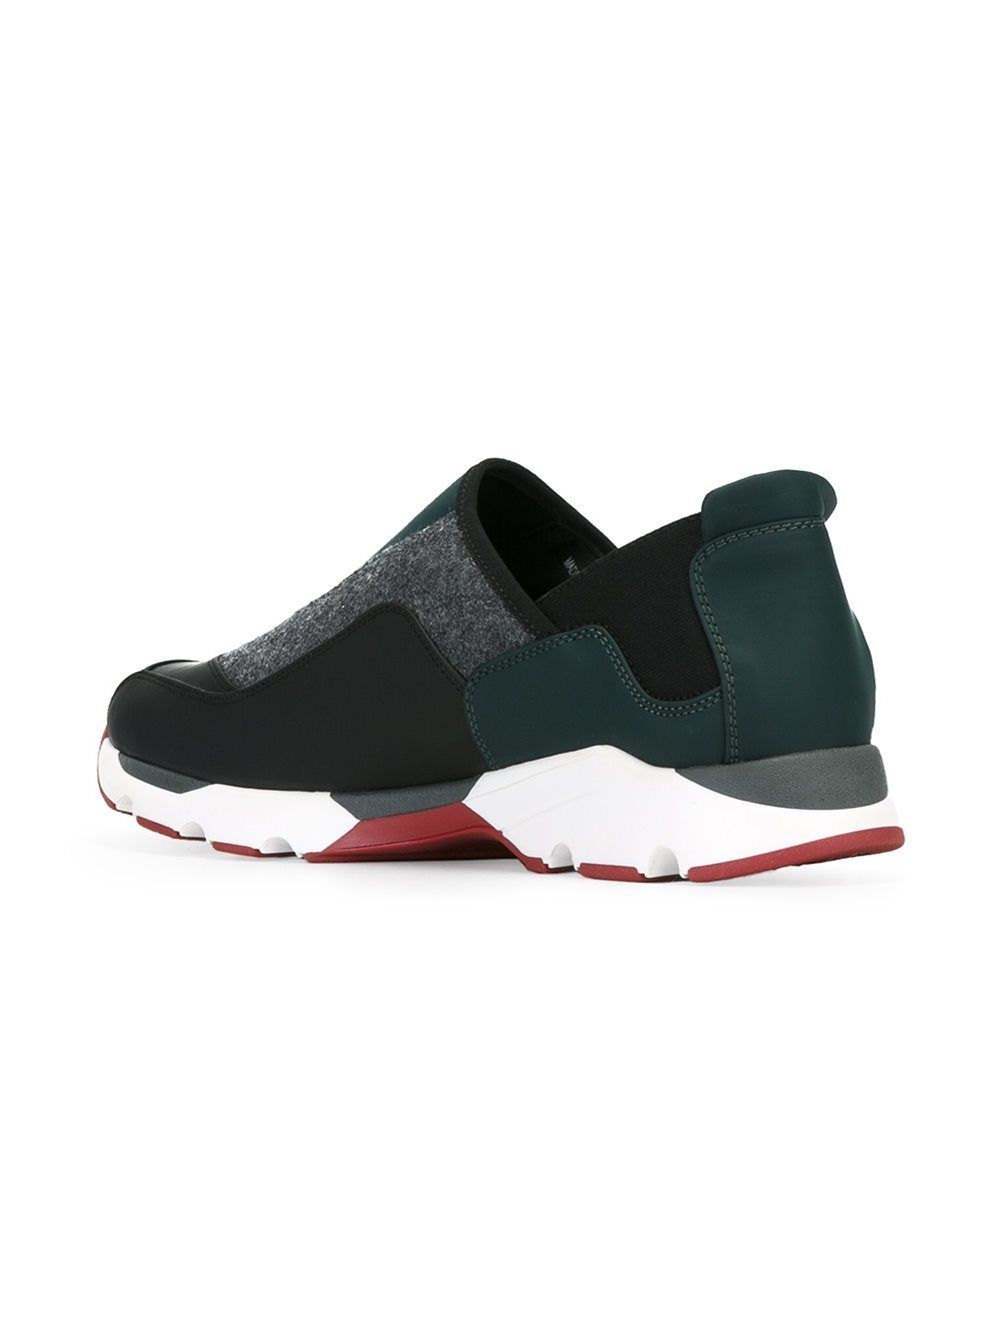 popular marni slip on sneakers buyma